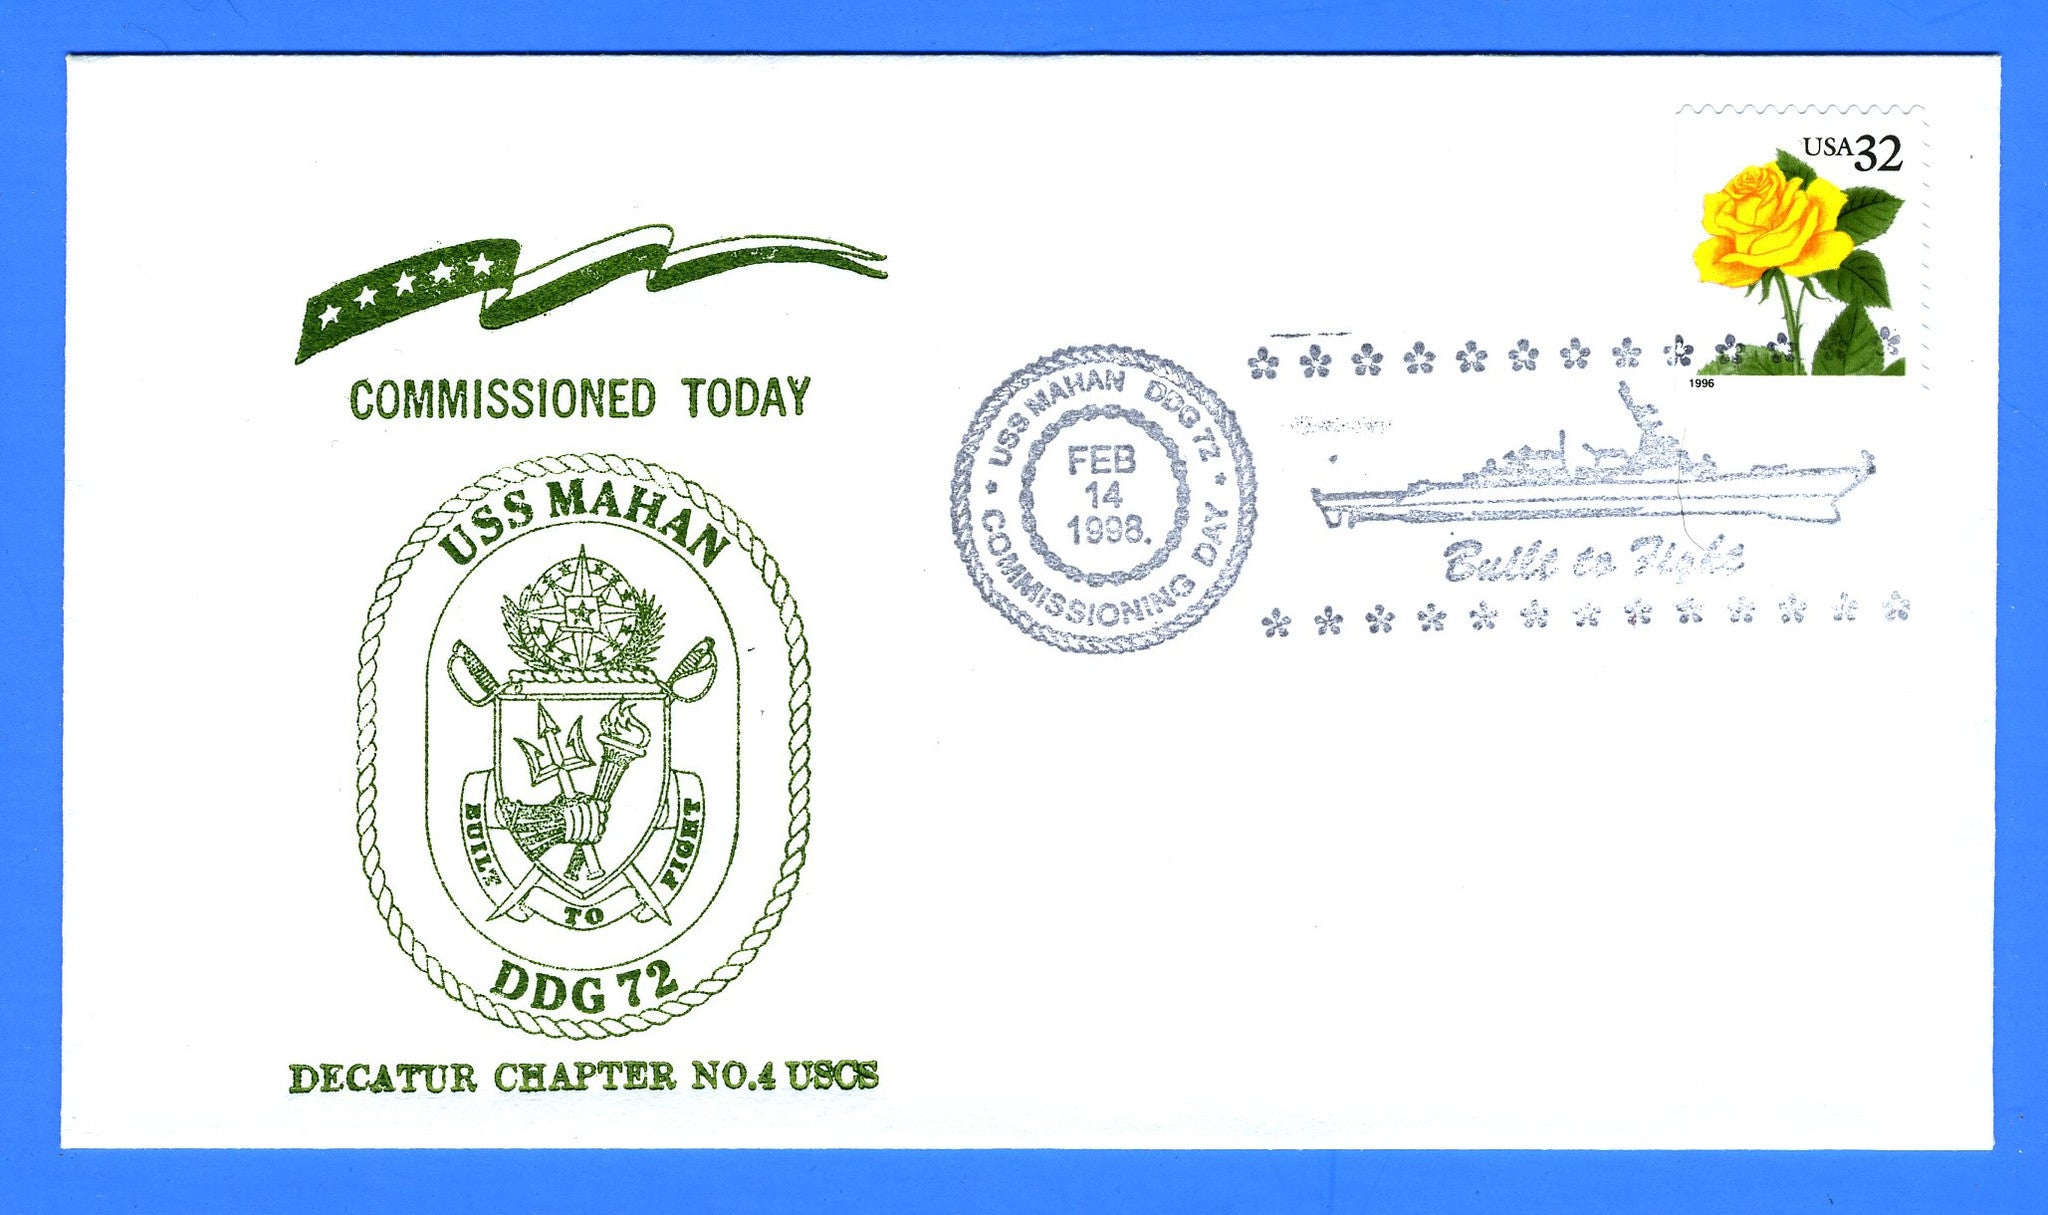 USS Mahan DDG-72 Commissioned February 14, 1998 - Cachet by USS Decatur Chapter No. 4, USCS